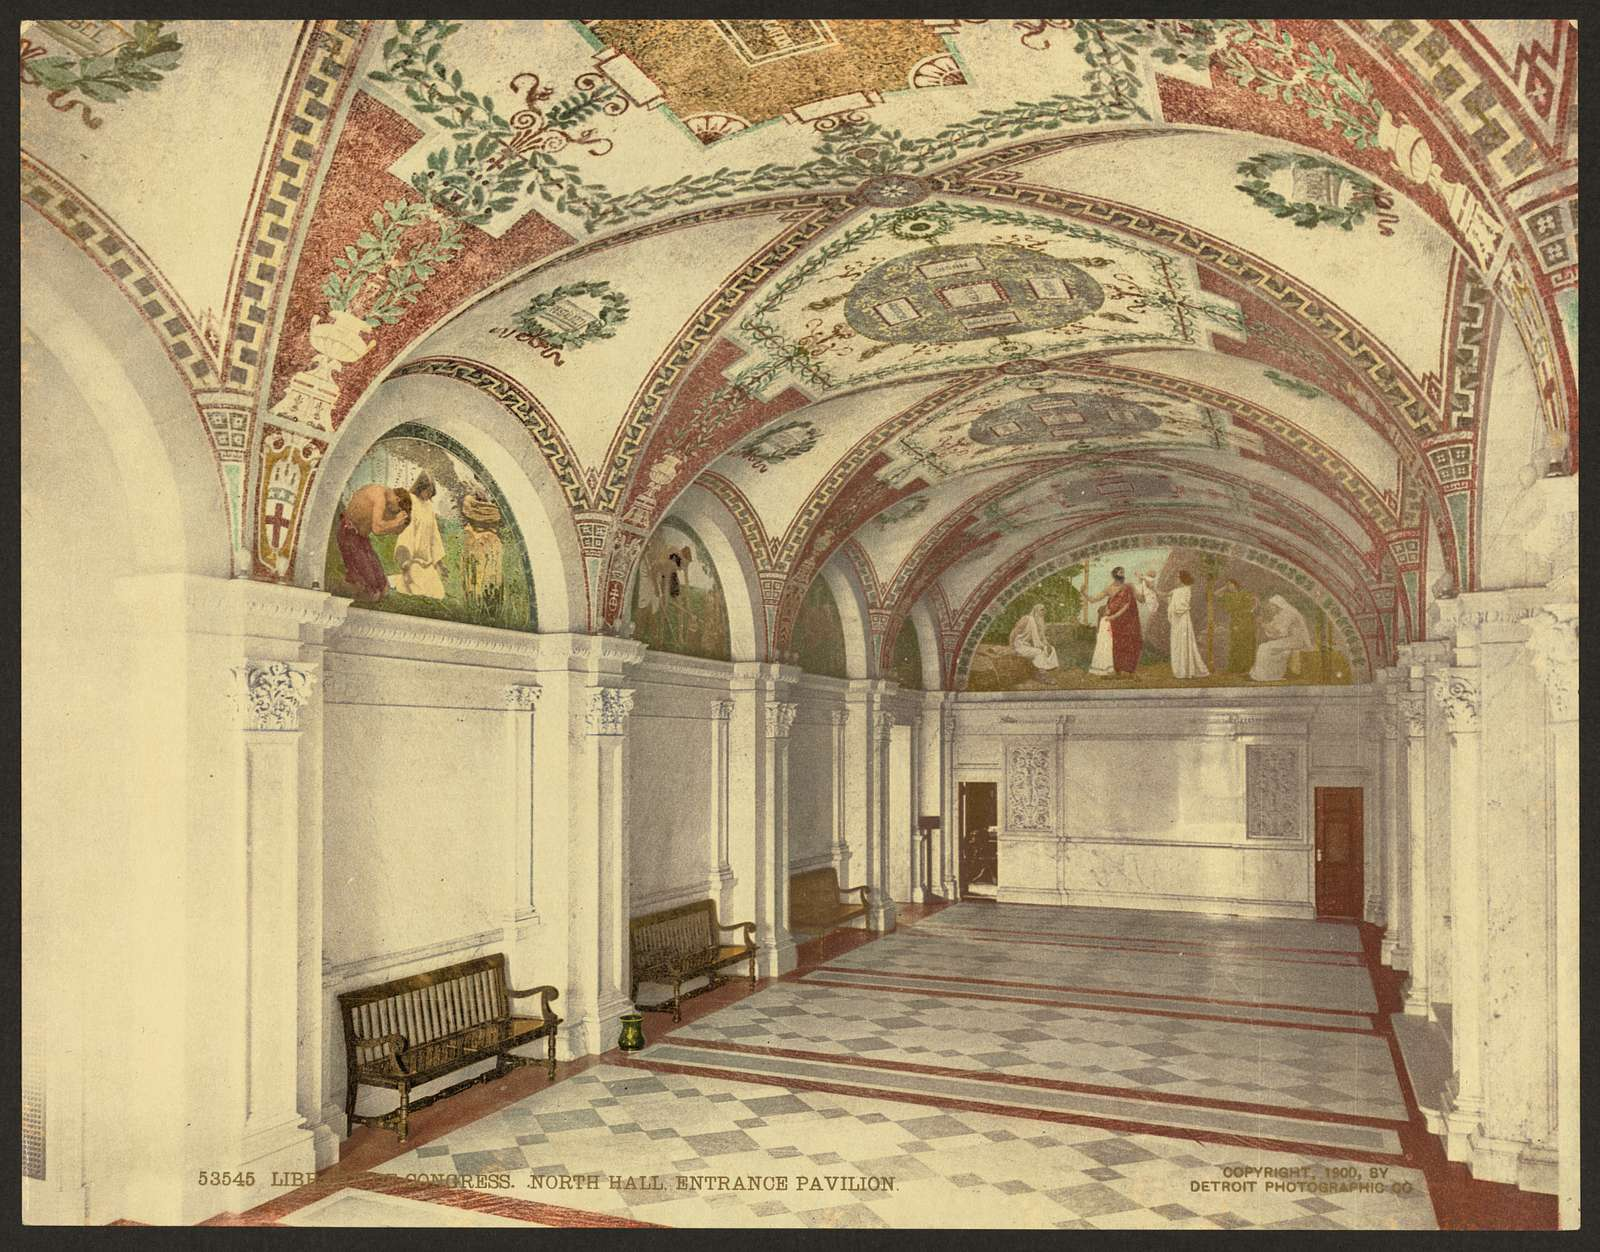 Library of Congress, north hall, entrance pavillion